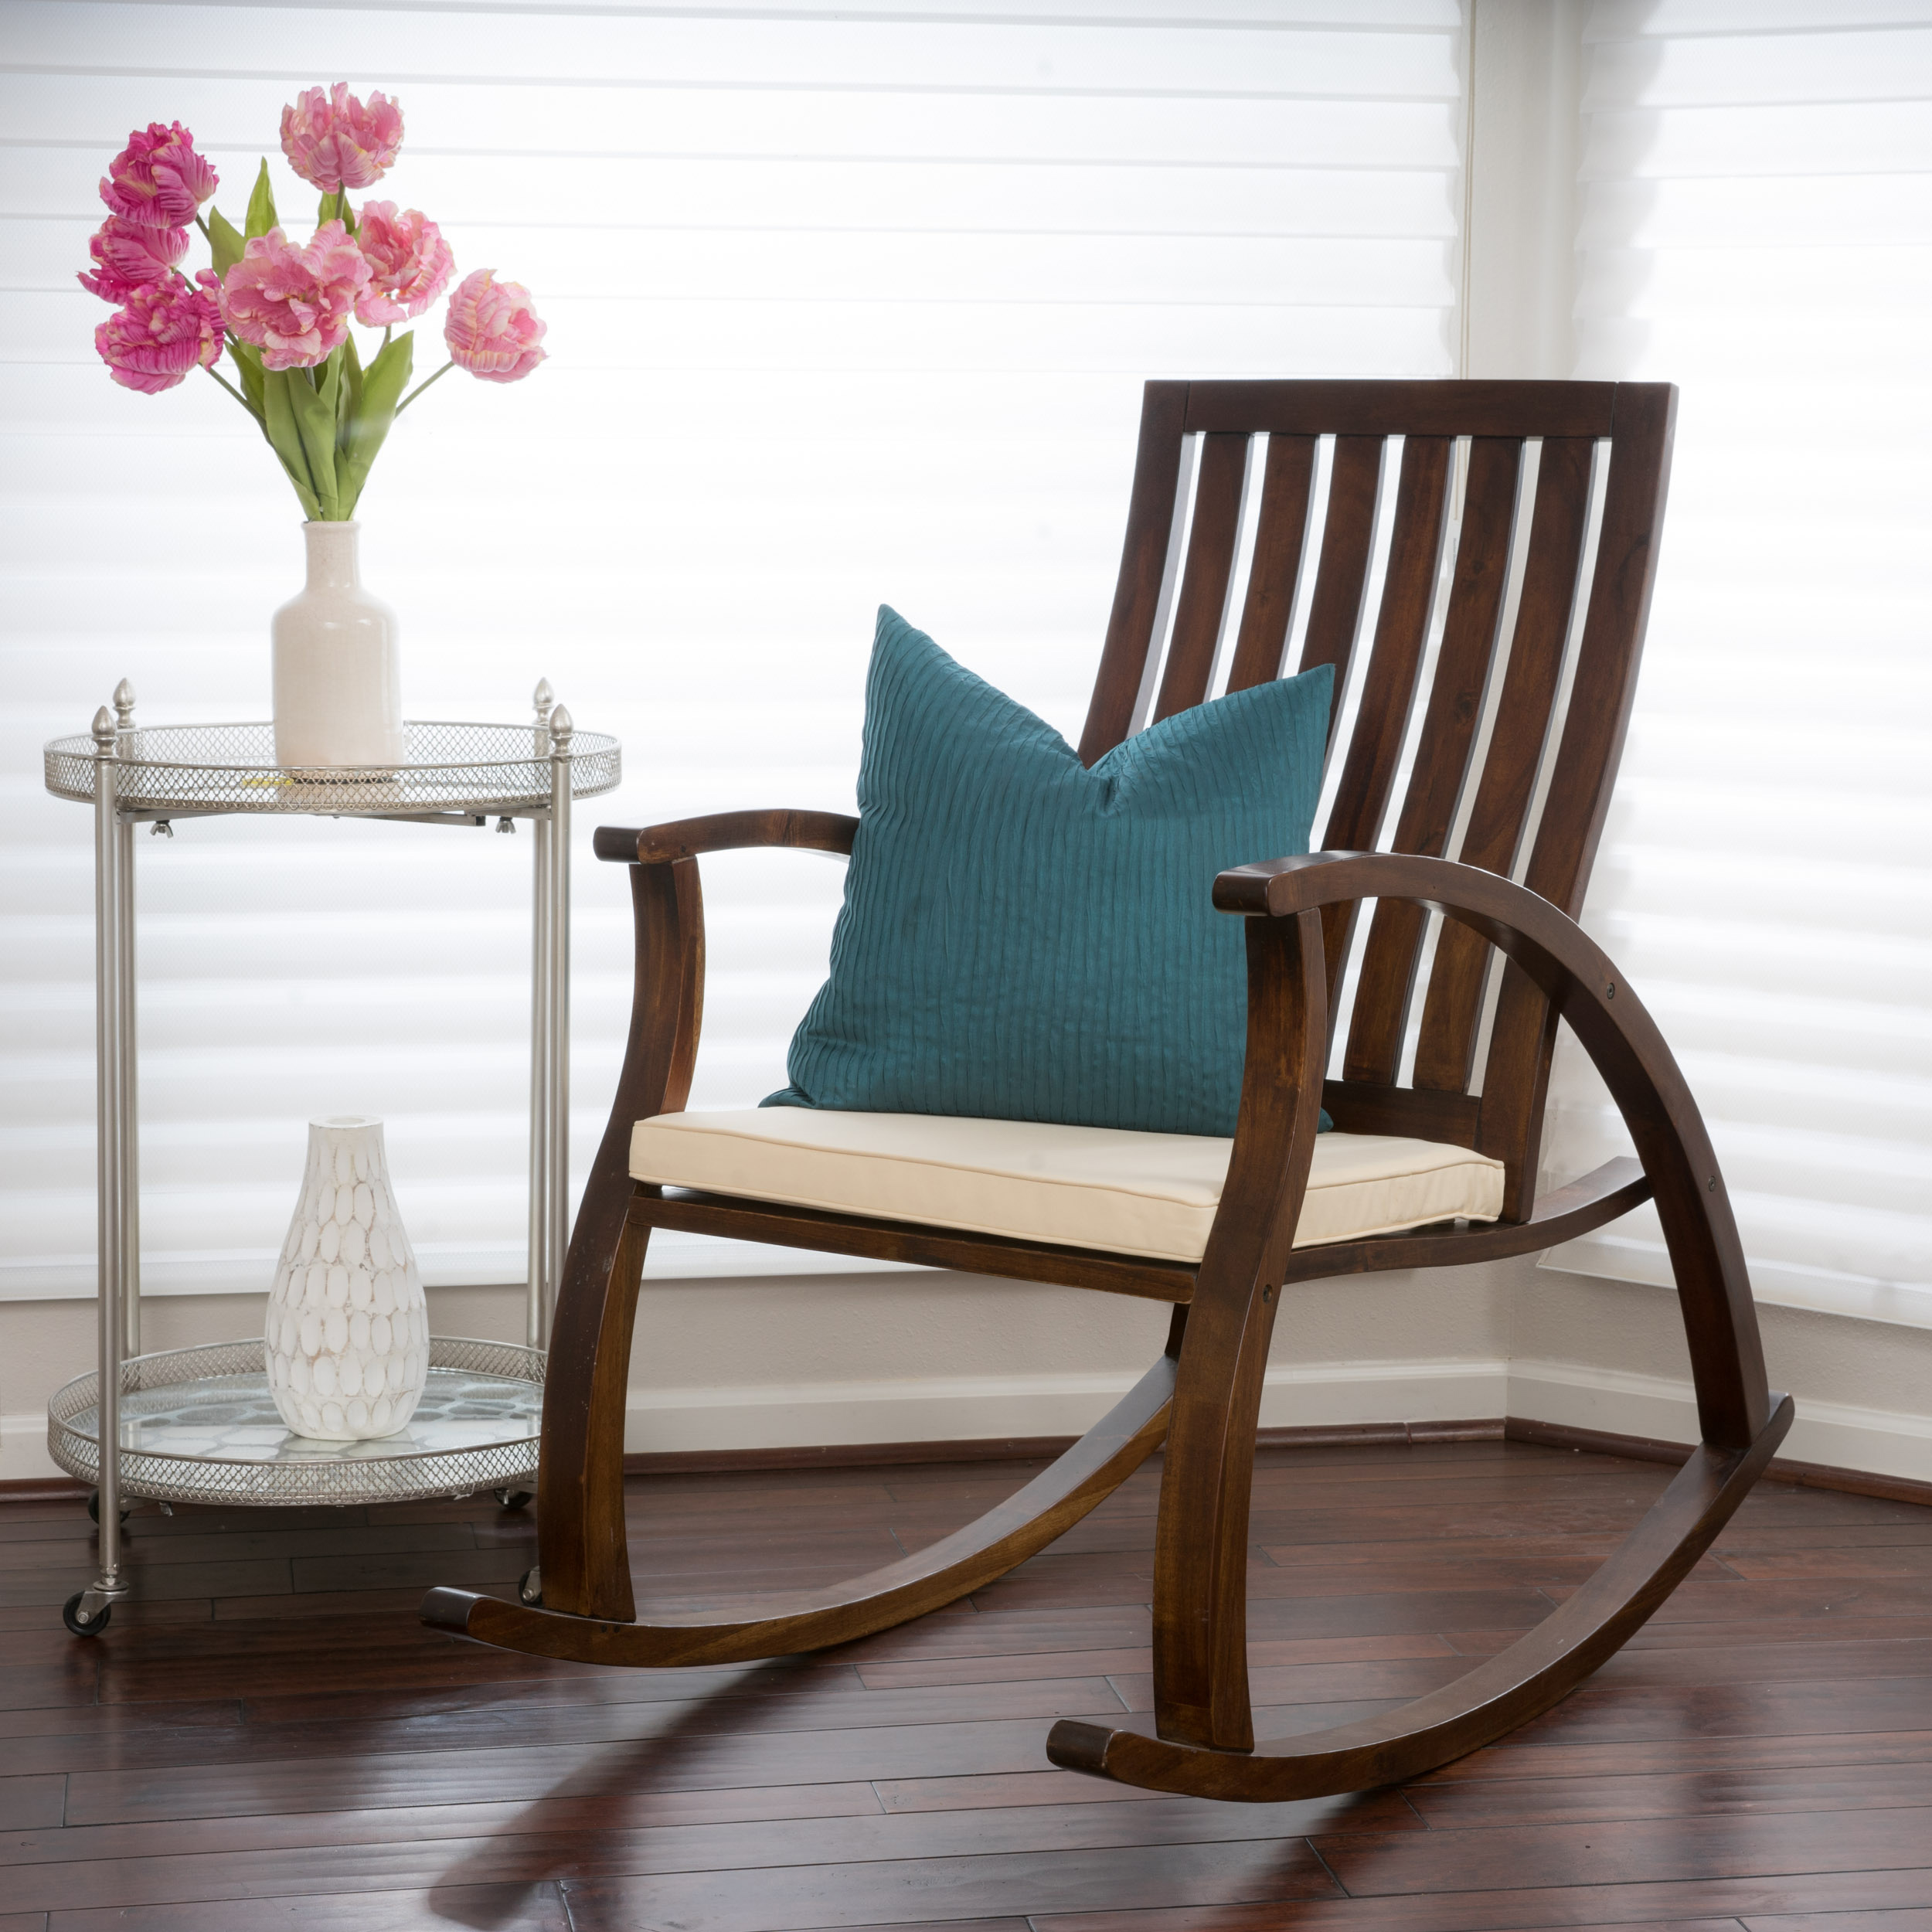 Rocking Chair With Cushions Chelsea Brown Mahogany Wood Rocking Chair With Cushion